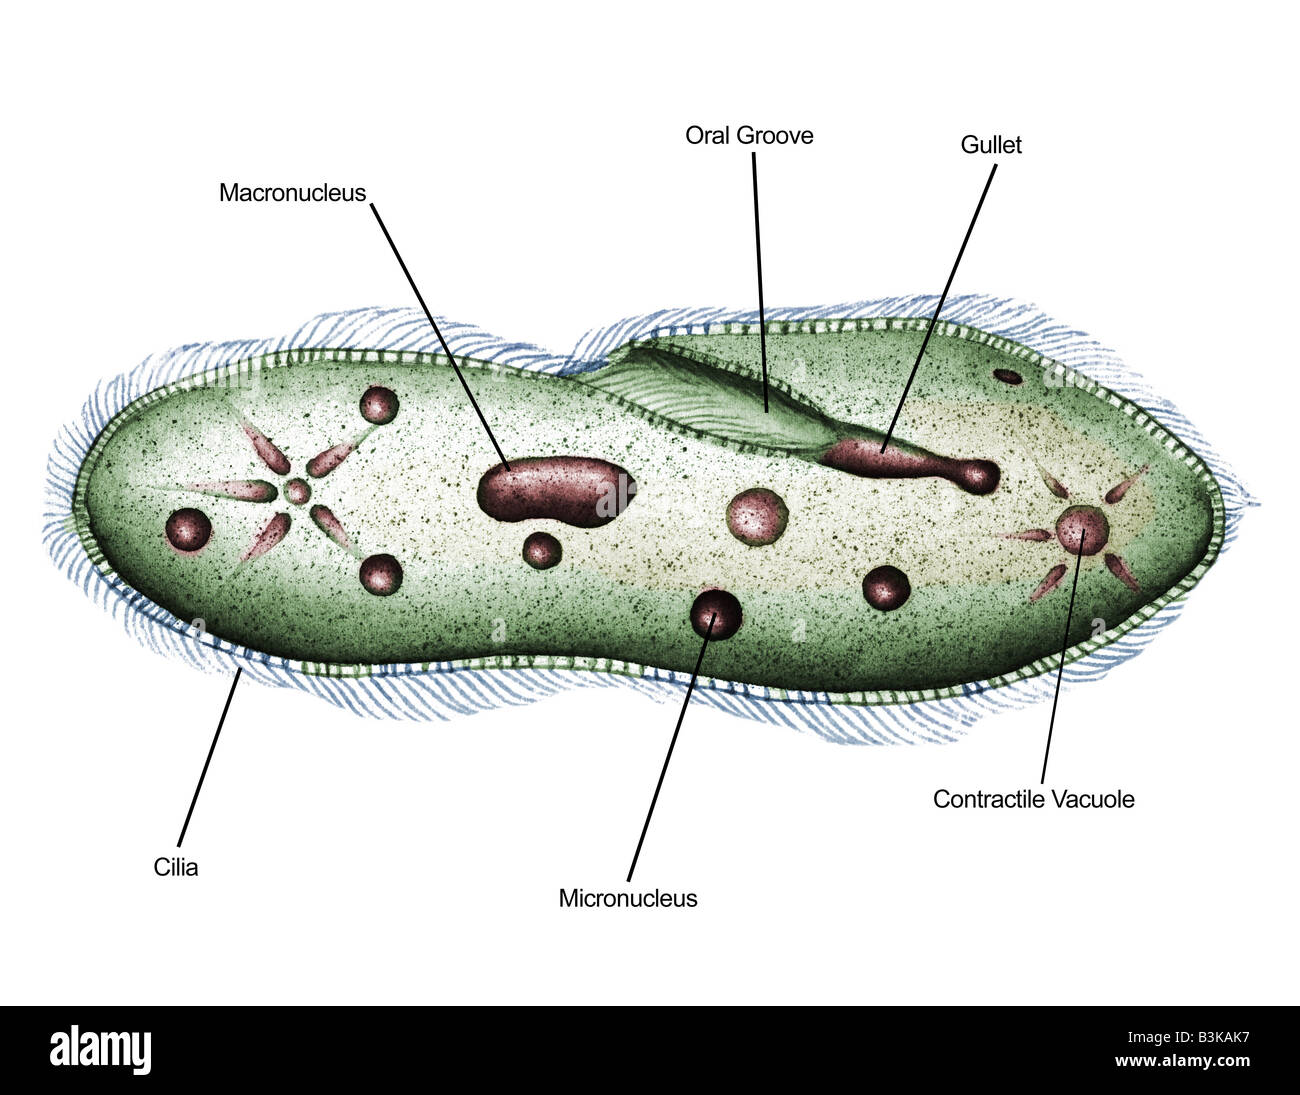 diagram of lily of the valley diagram of paramecium illustrated diagram of paramecium (paramecium sp.) 1000x ...